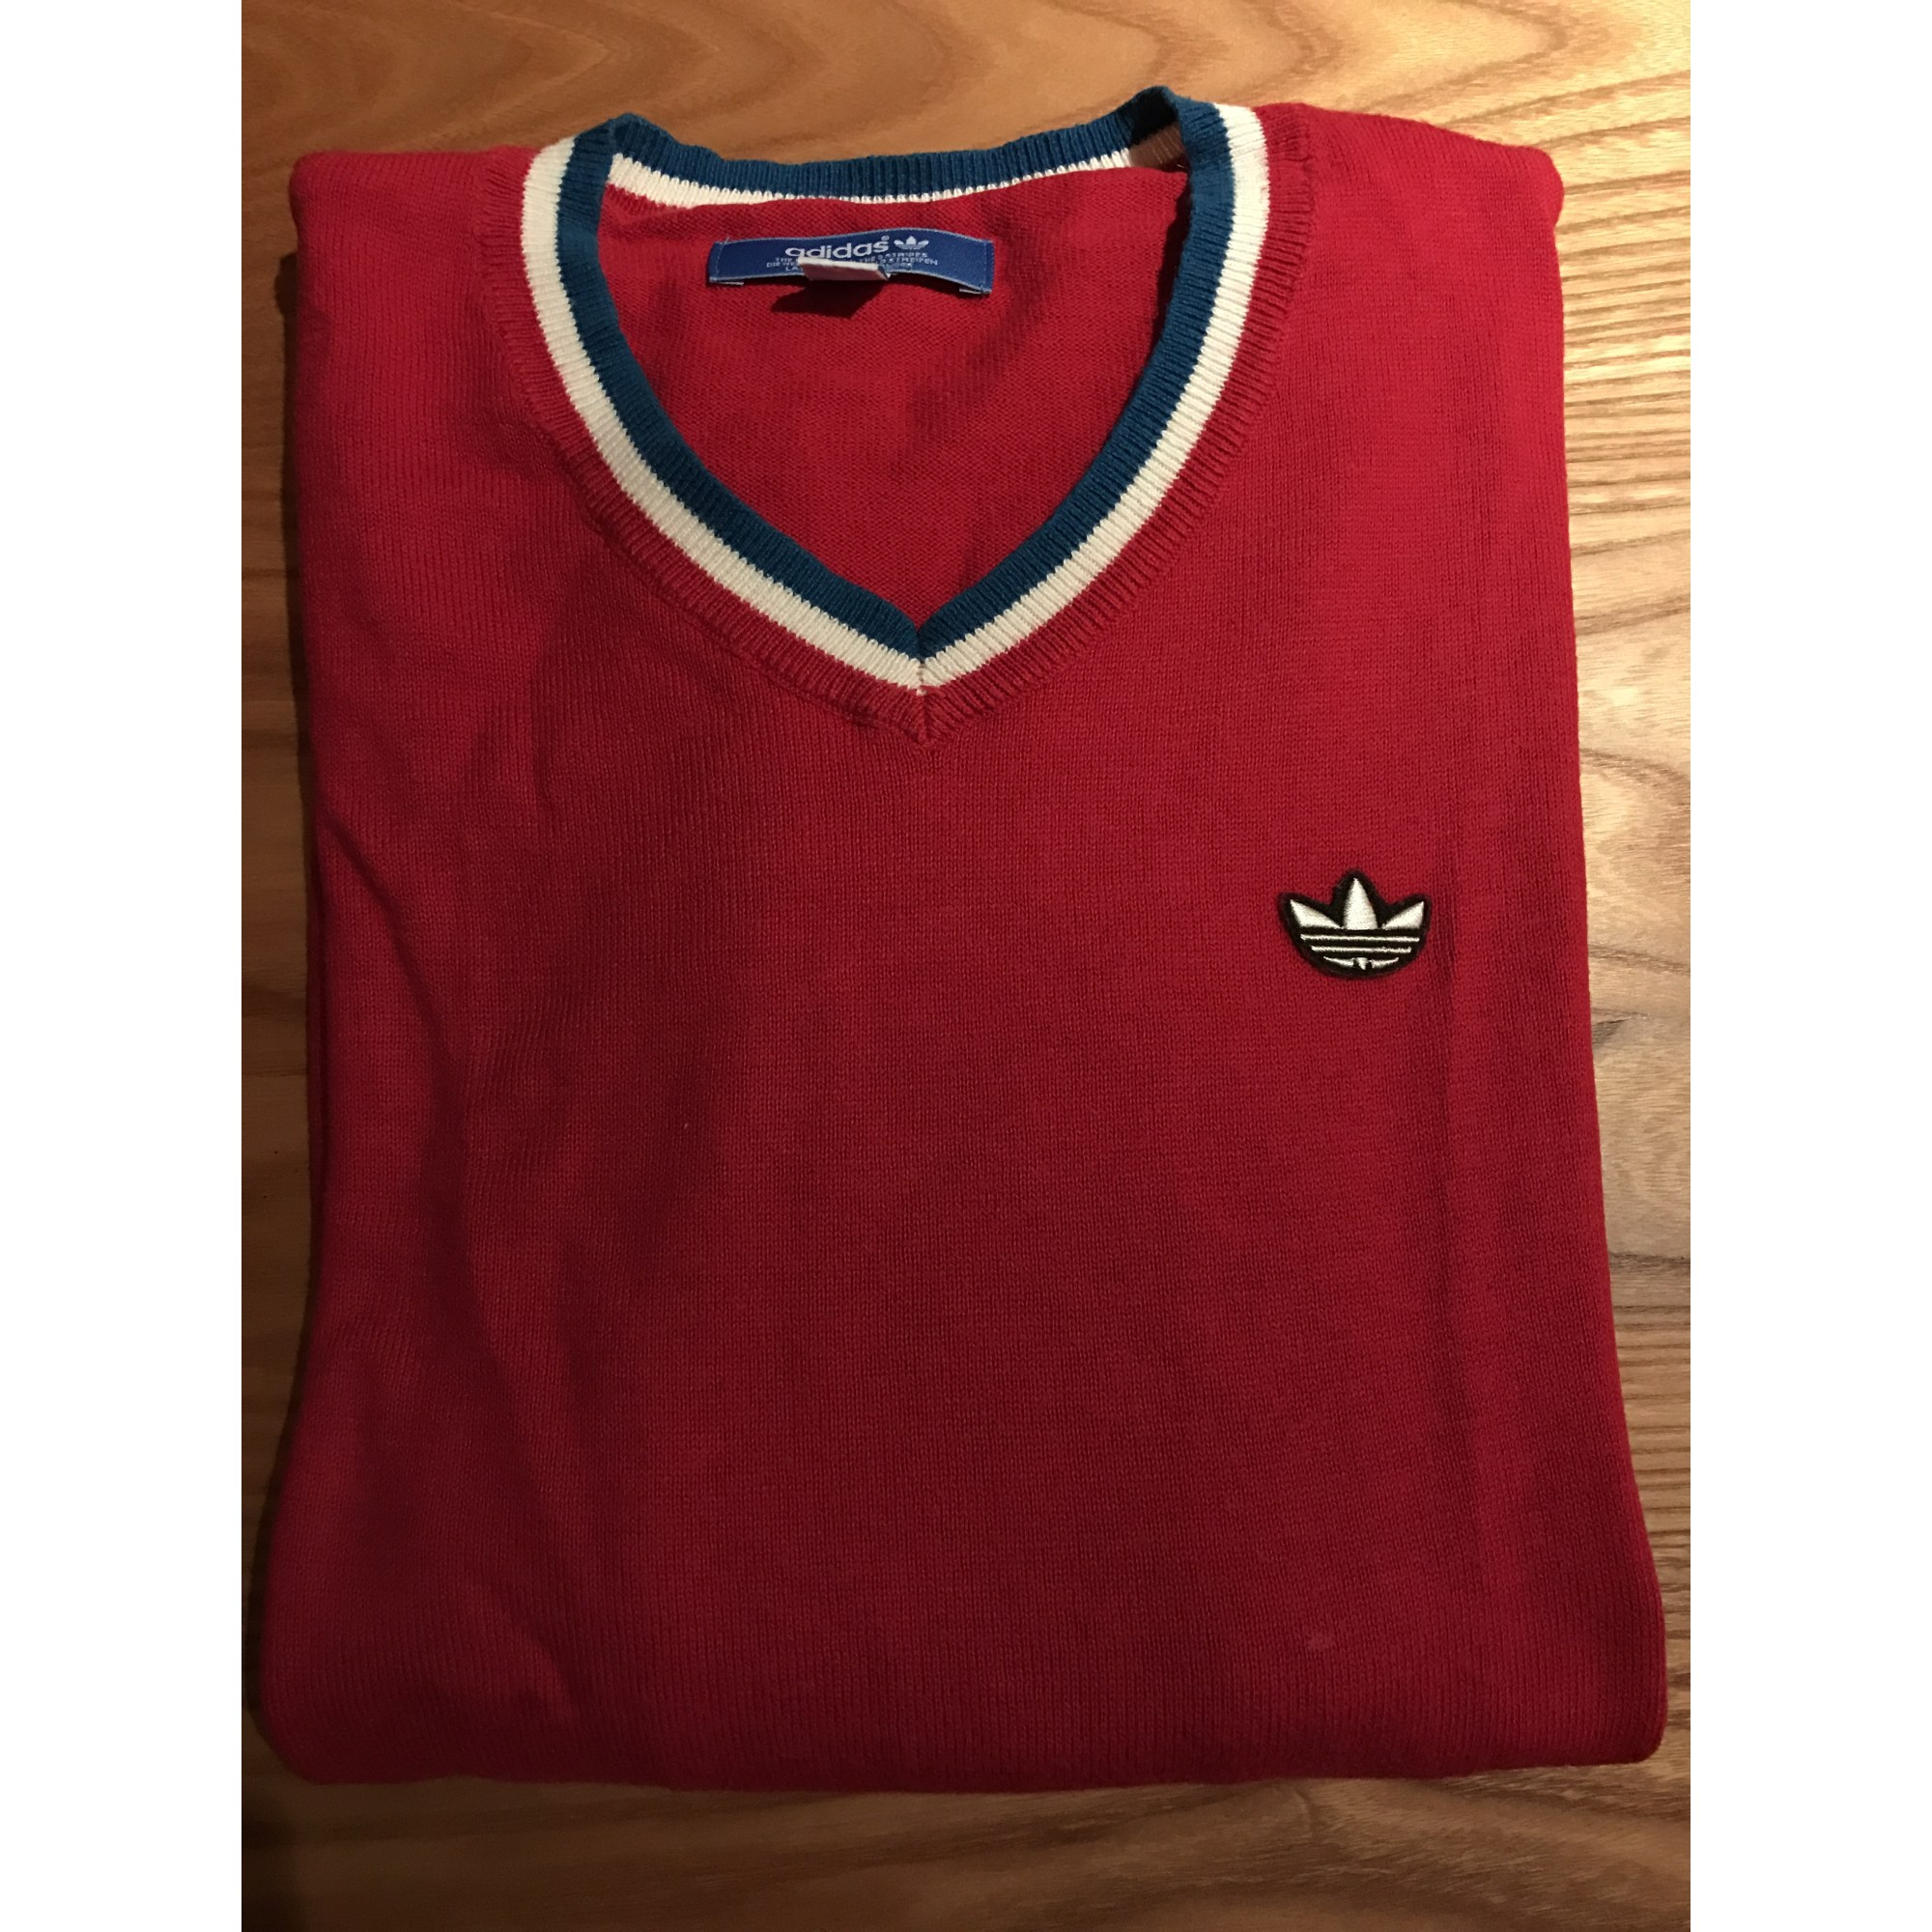 a21e59ed4ca45 Pull ADIDAS 0 (XS) rouge - 5362351